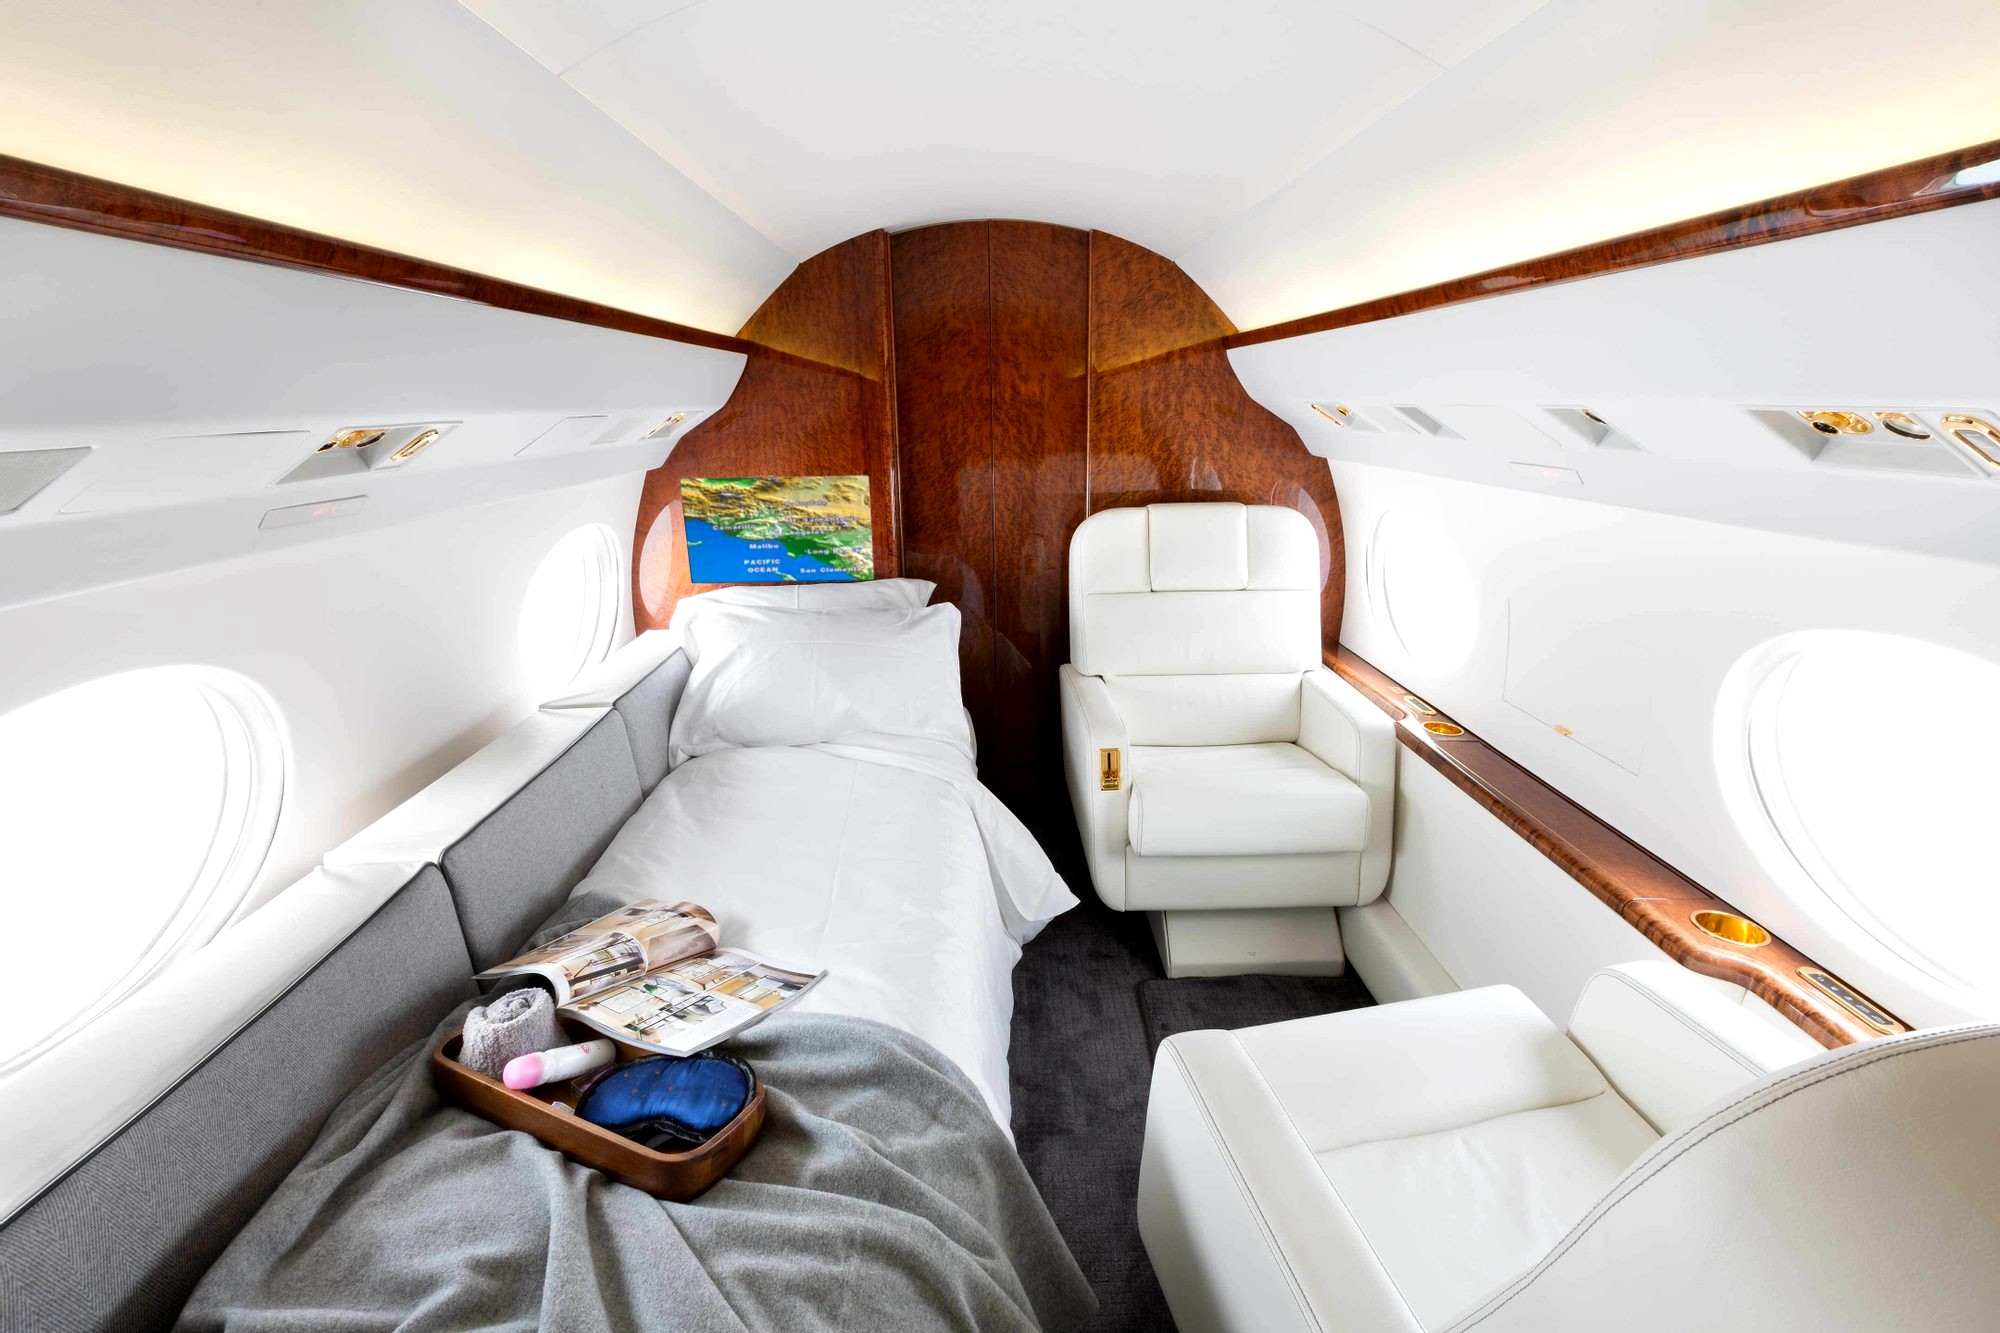 Private 747 jet with a luxury bedroom